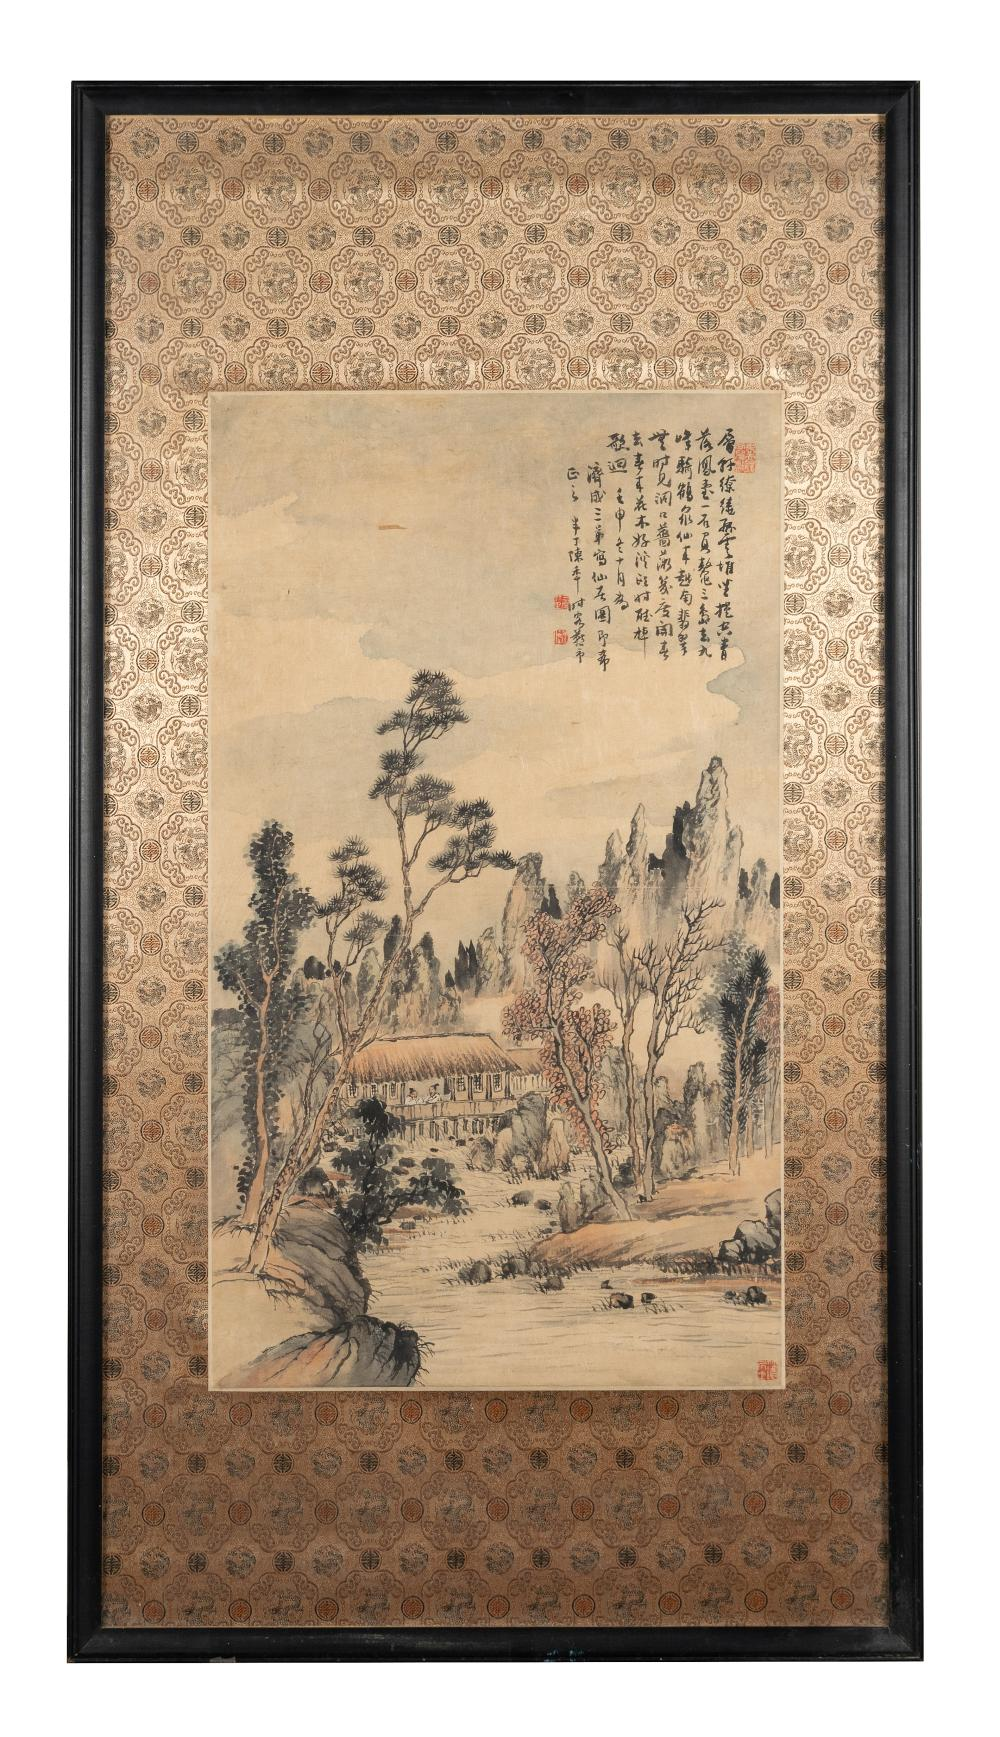 LANDSCAPE PAINTING, CHEN BANDING GIVEN TO JI CHEN